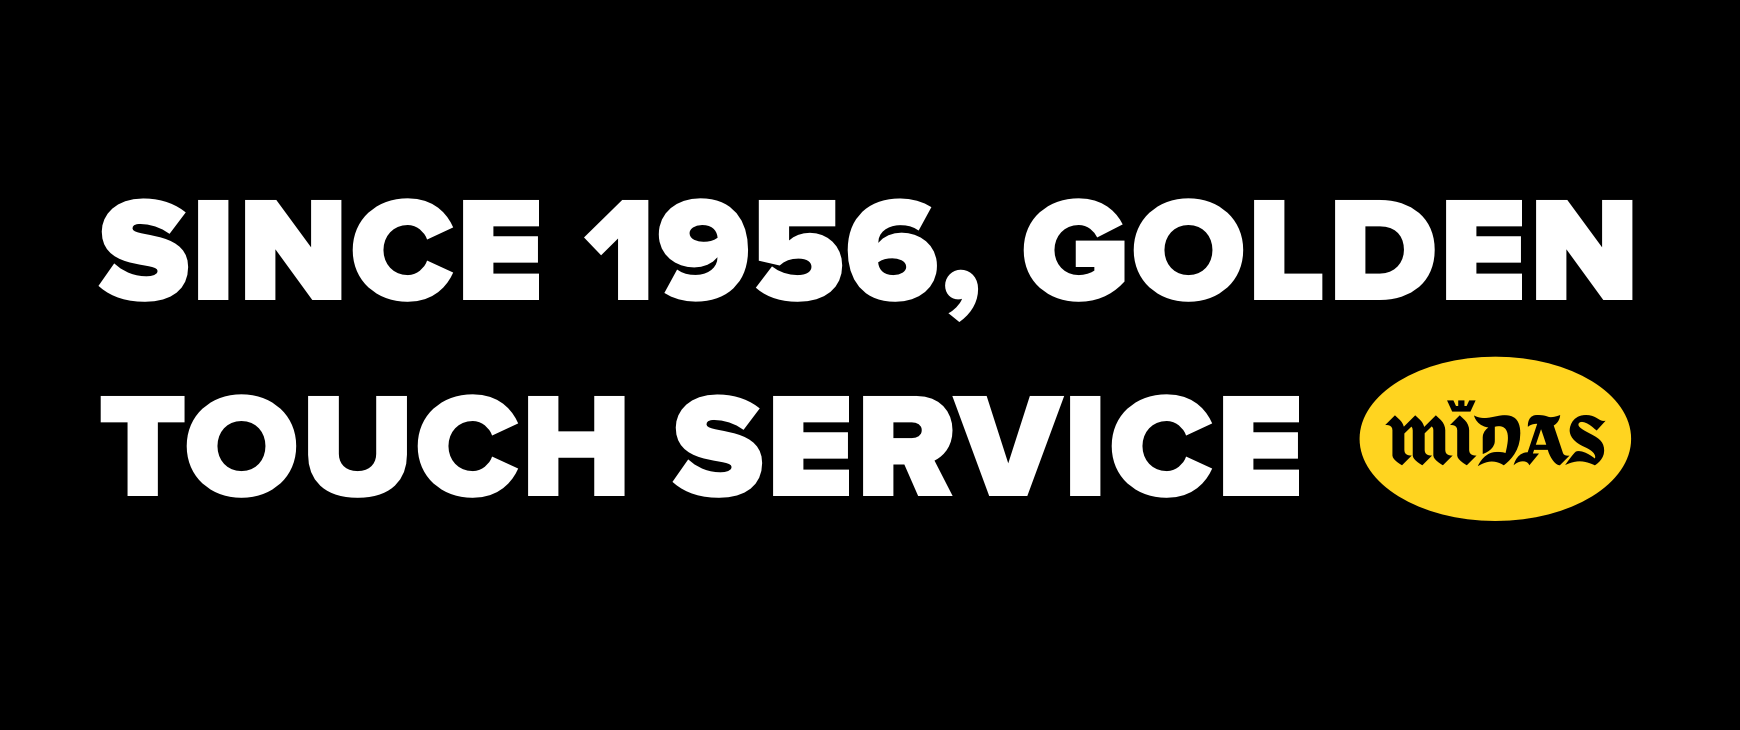 Since 1956, golden touch service Midas